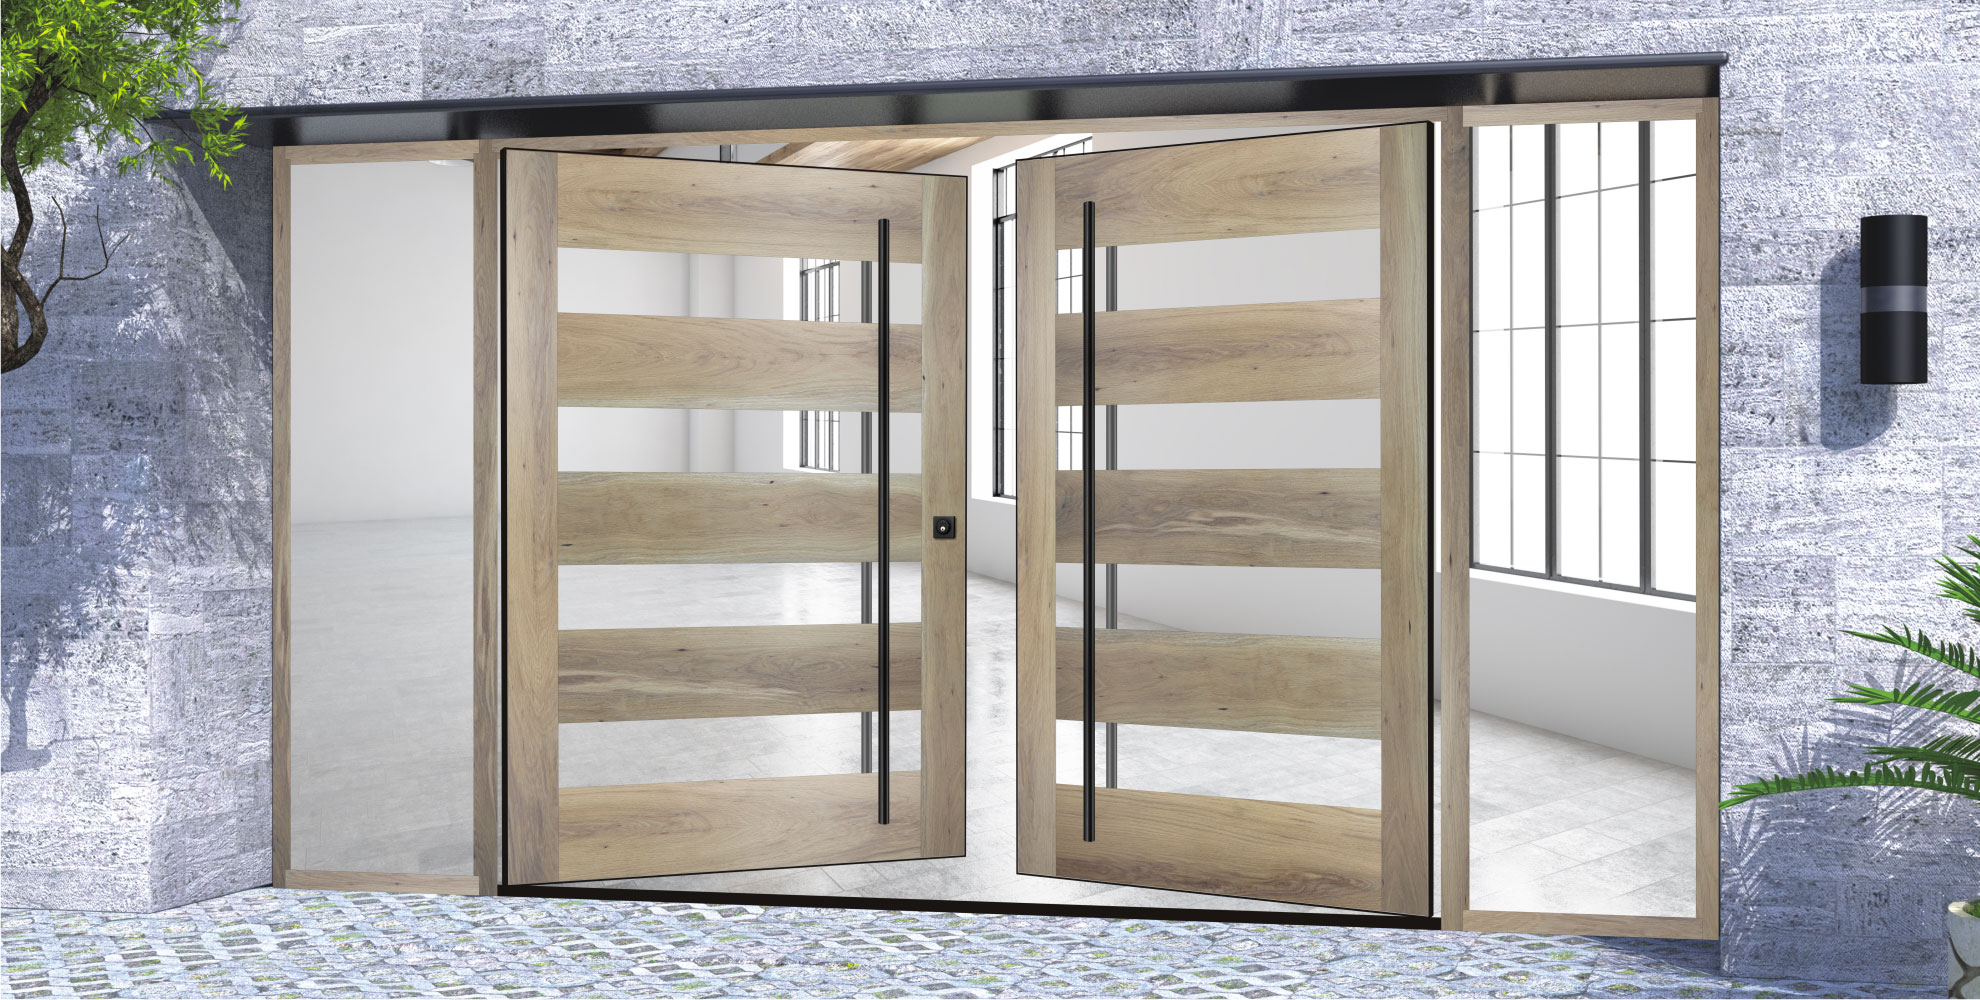 white oak hardwood double door made of glass and metal with round door hardware and sidelights